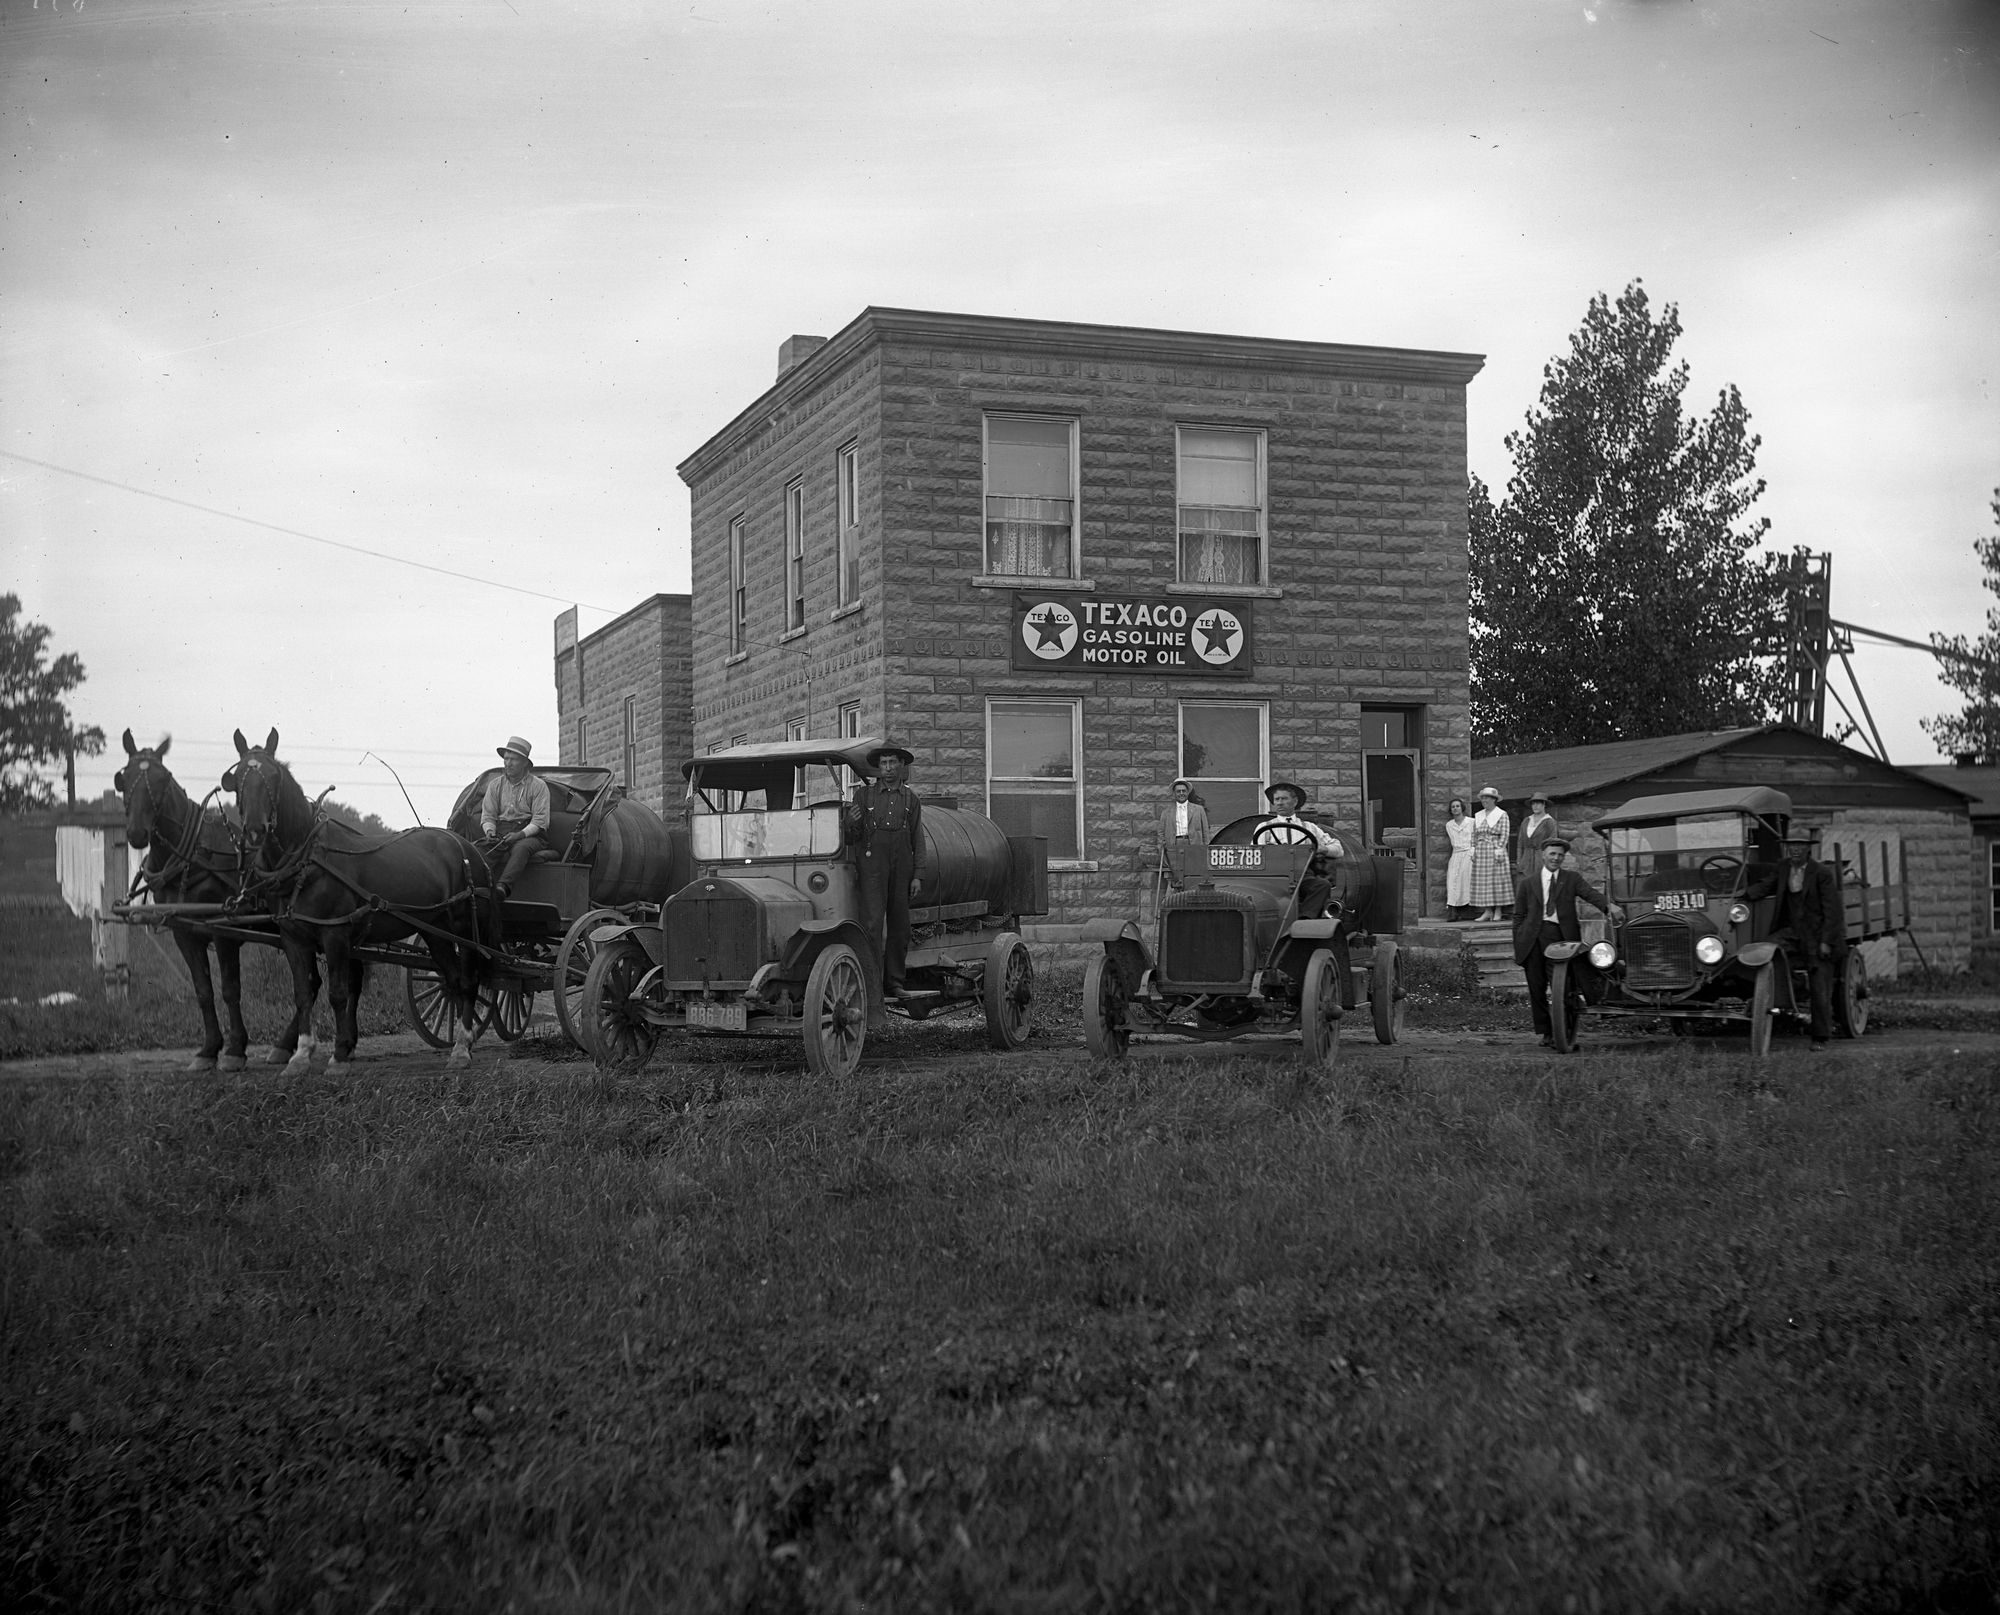 Horse drawn wagons and automobiles at Texaco Station in